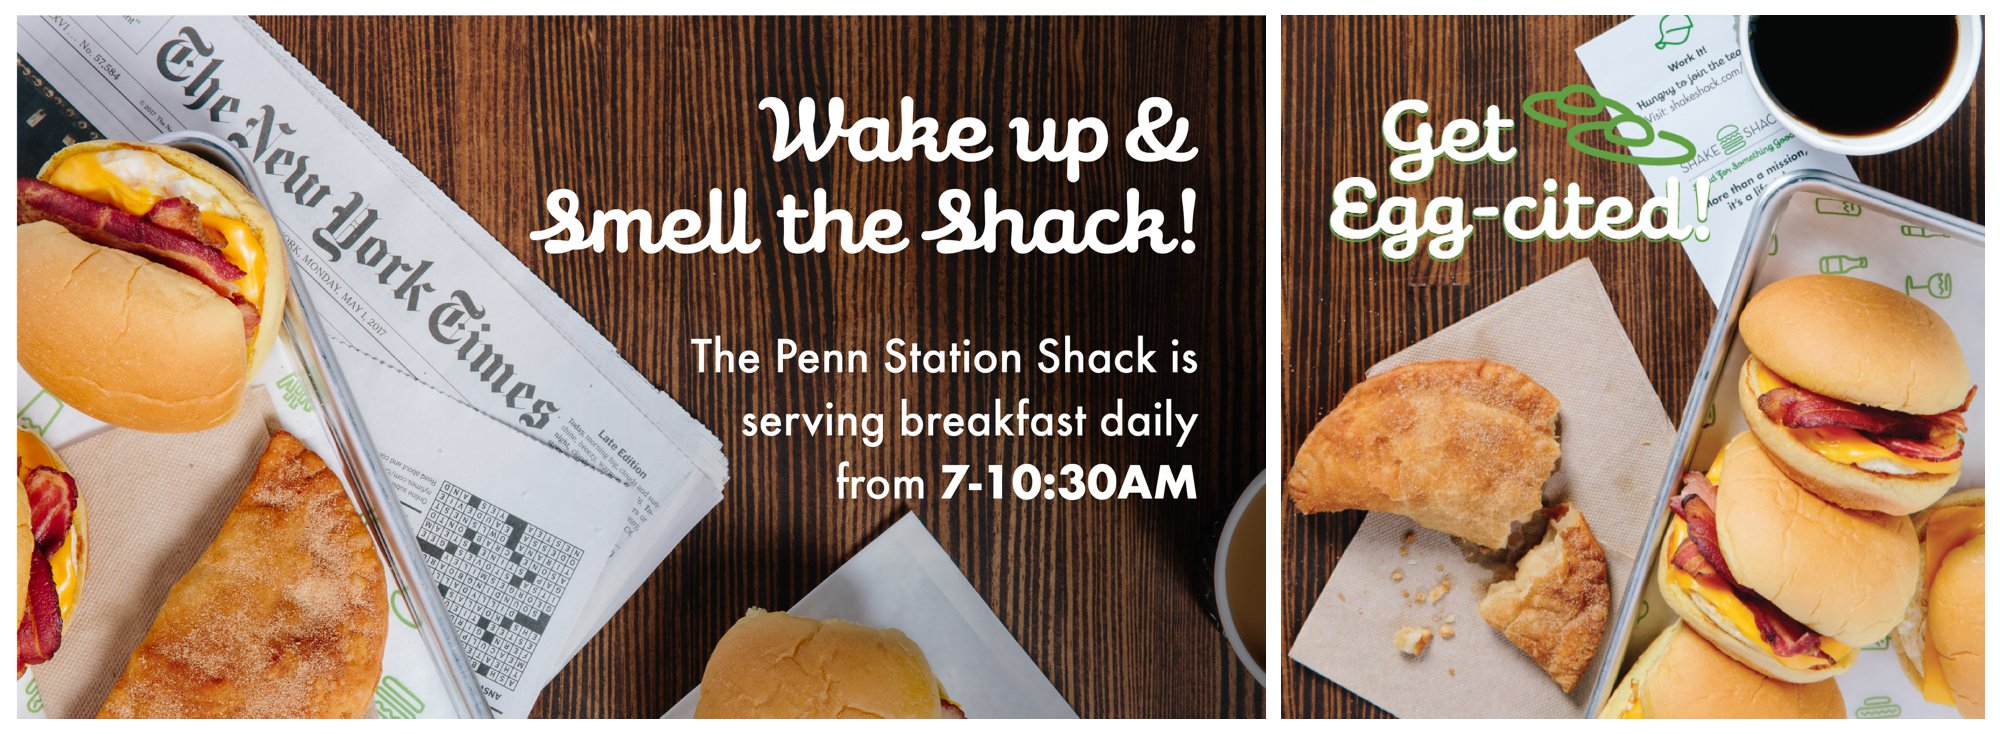 PennStationBreakfast_Digital-Board_1920x1080_1.jpg